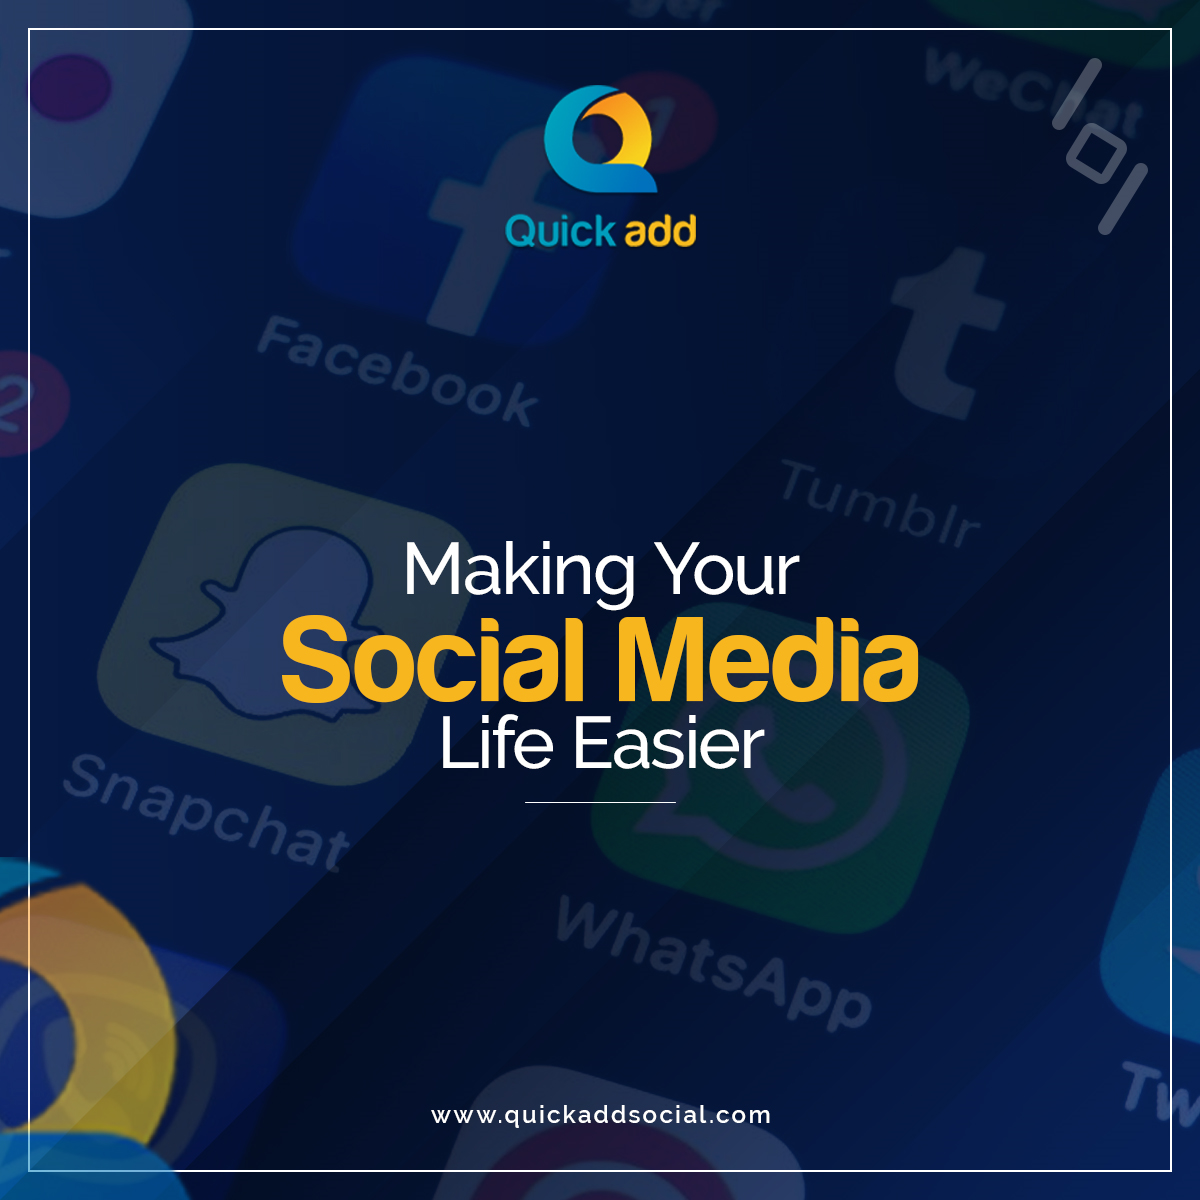 Quick Add- Making Your Social Media Life Easier